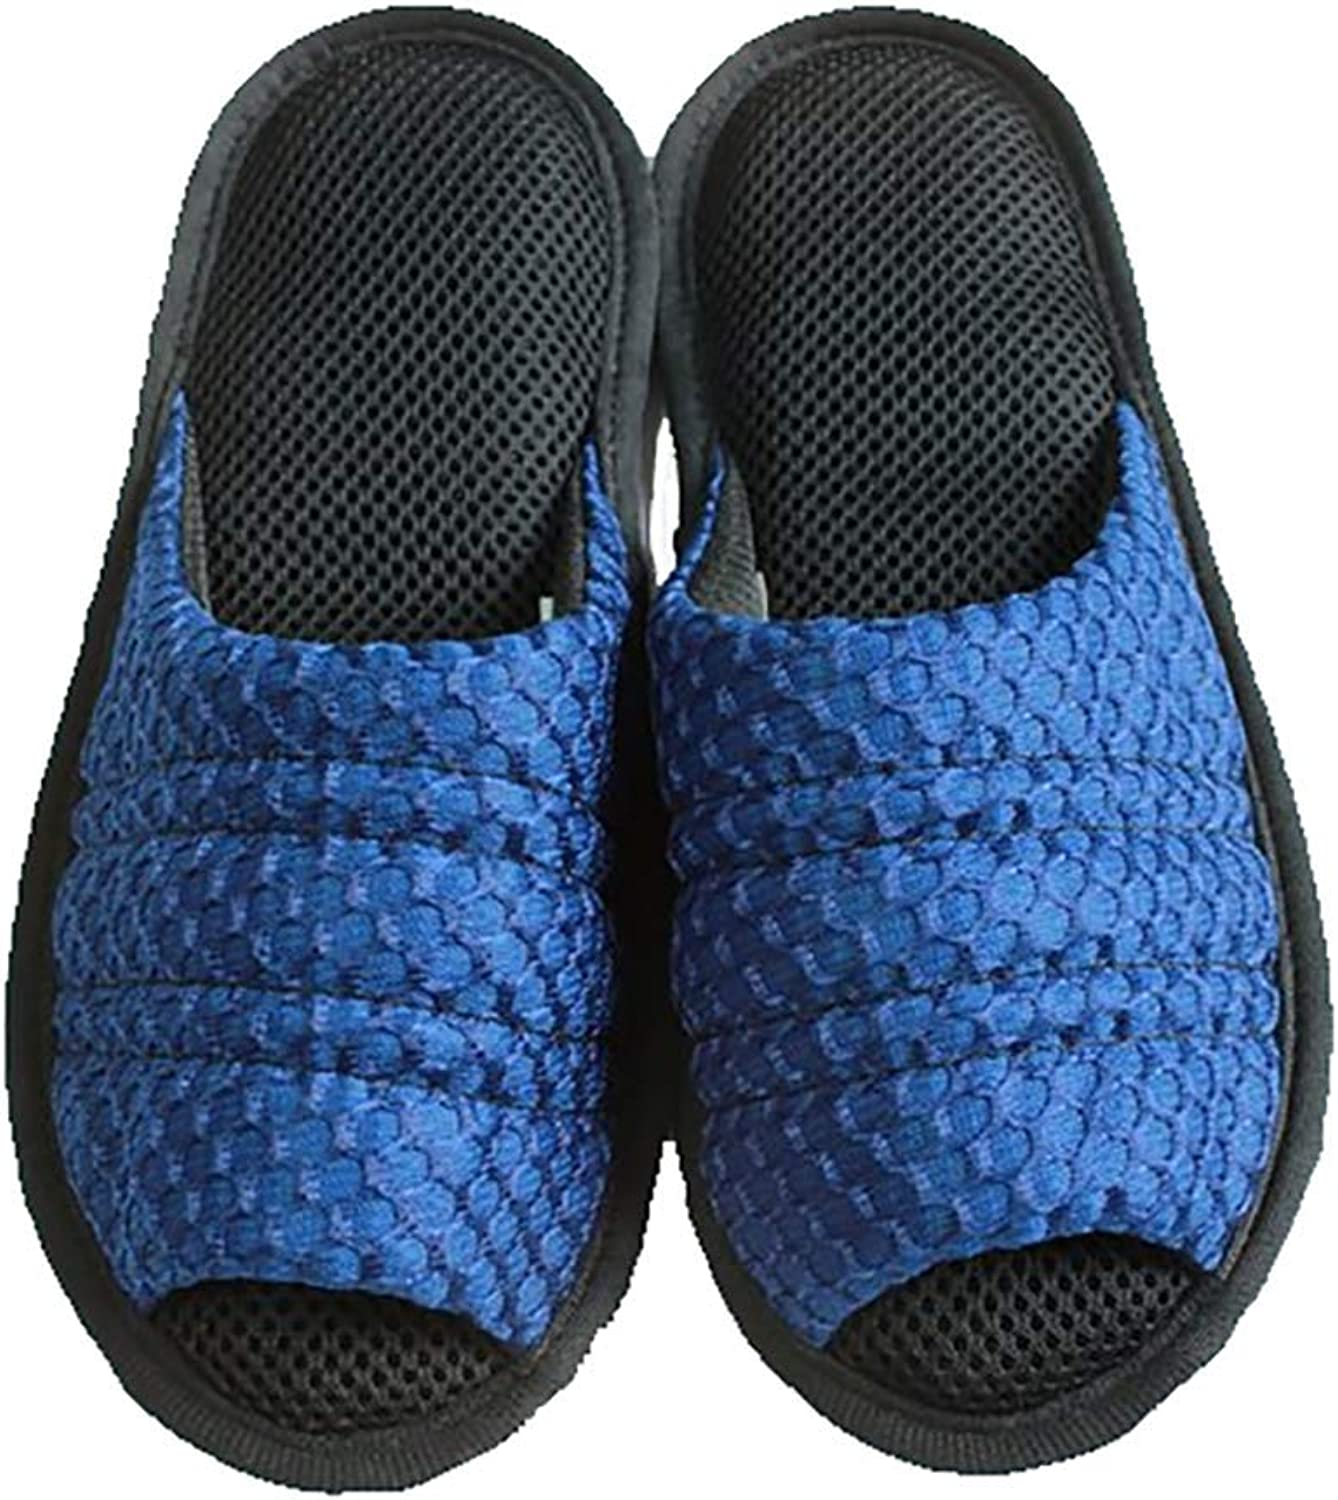 Air Cushion Indoor Sandal Slipper Unisex Non-Slip Open-Toe Breathable Soft Support shoes Washable